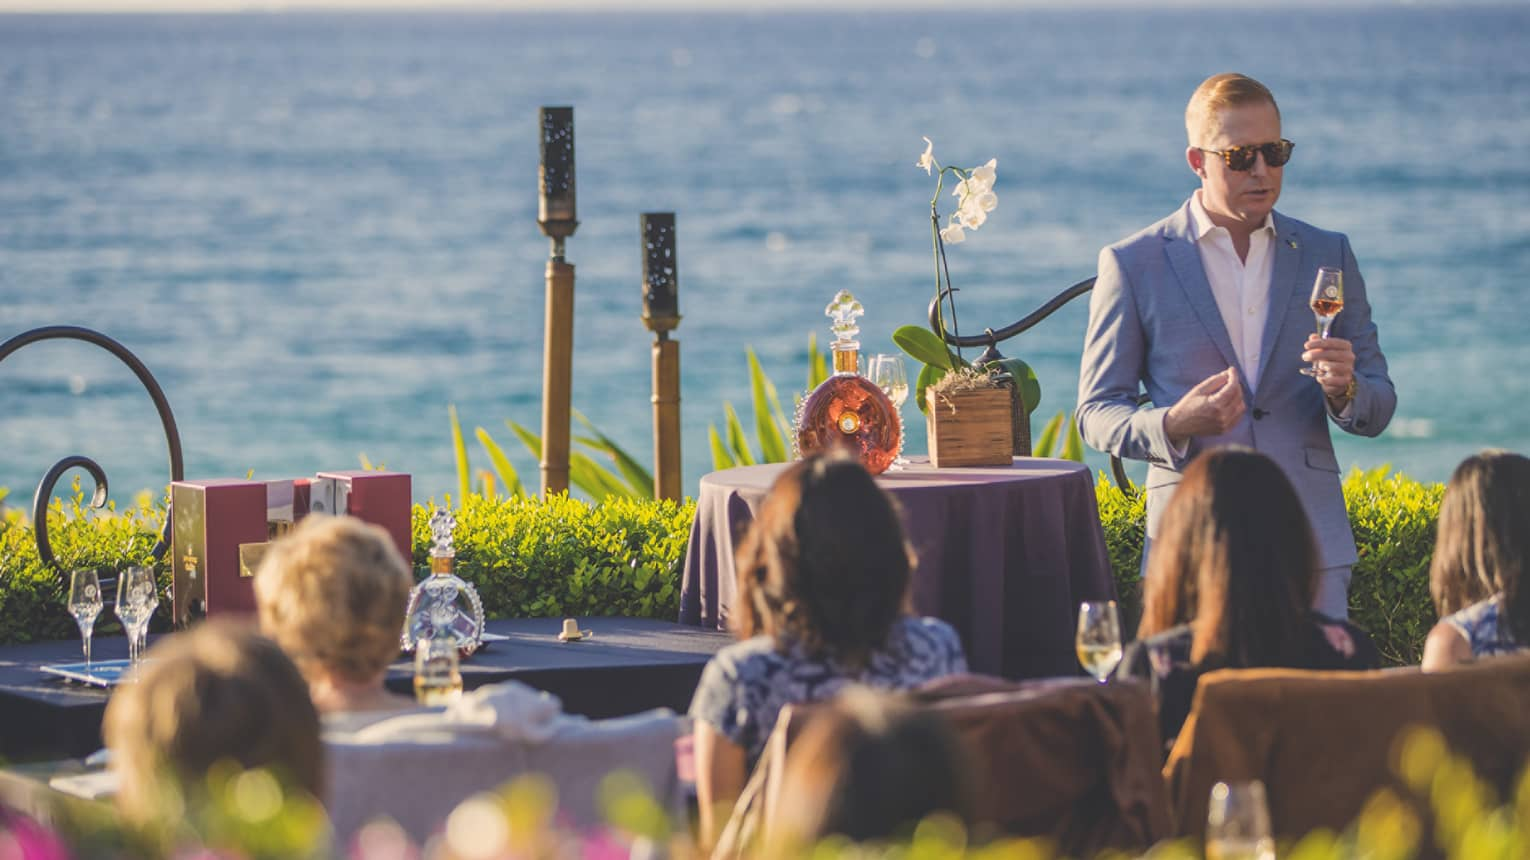 Guests seated outside by the beach listen to a presentation by a wine sommelier